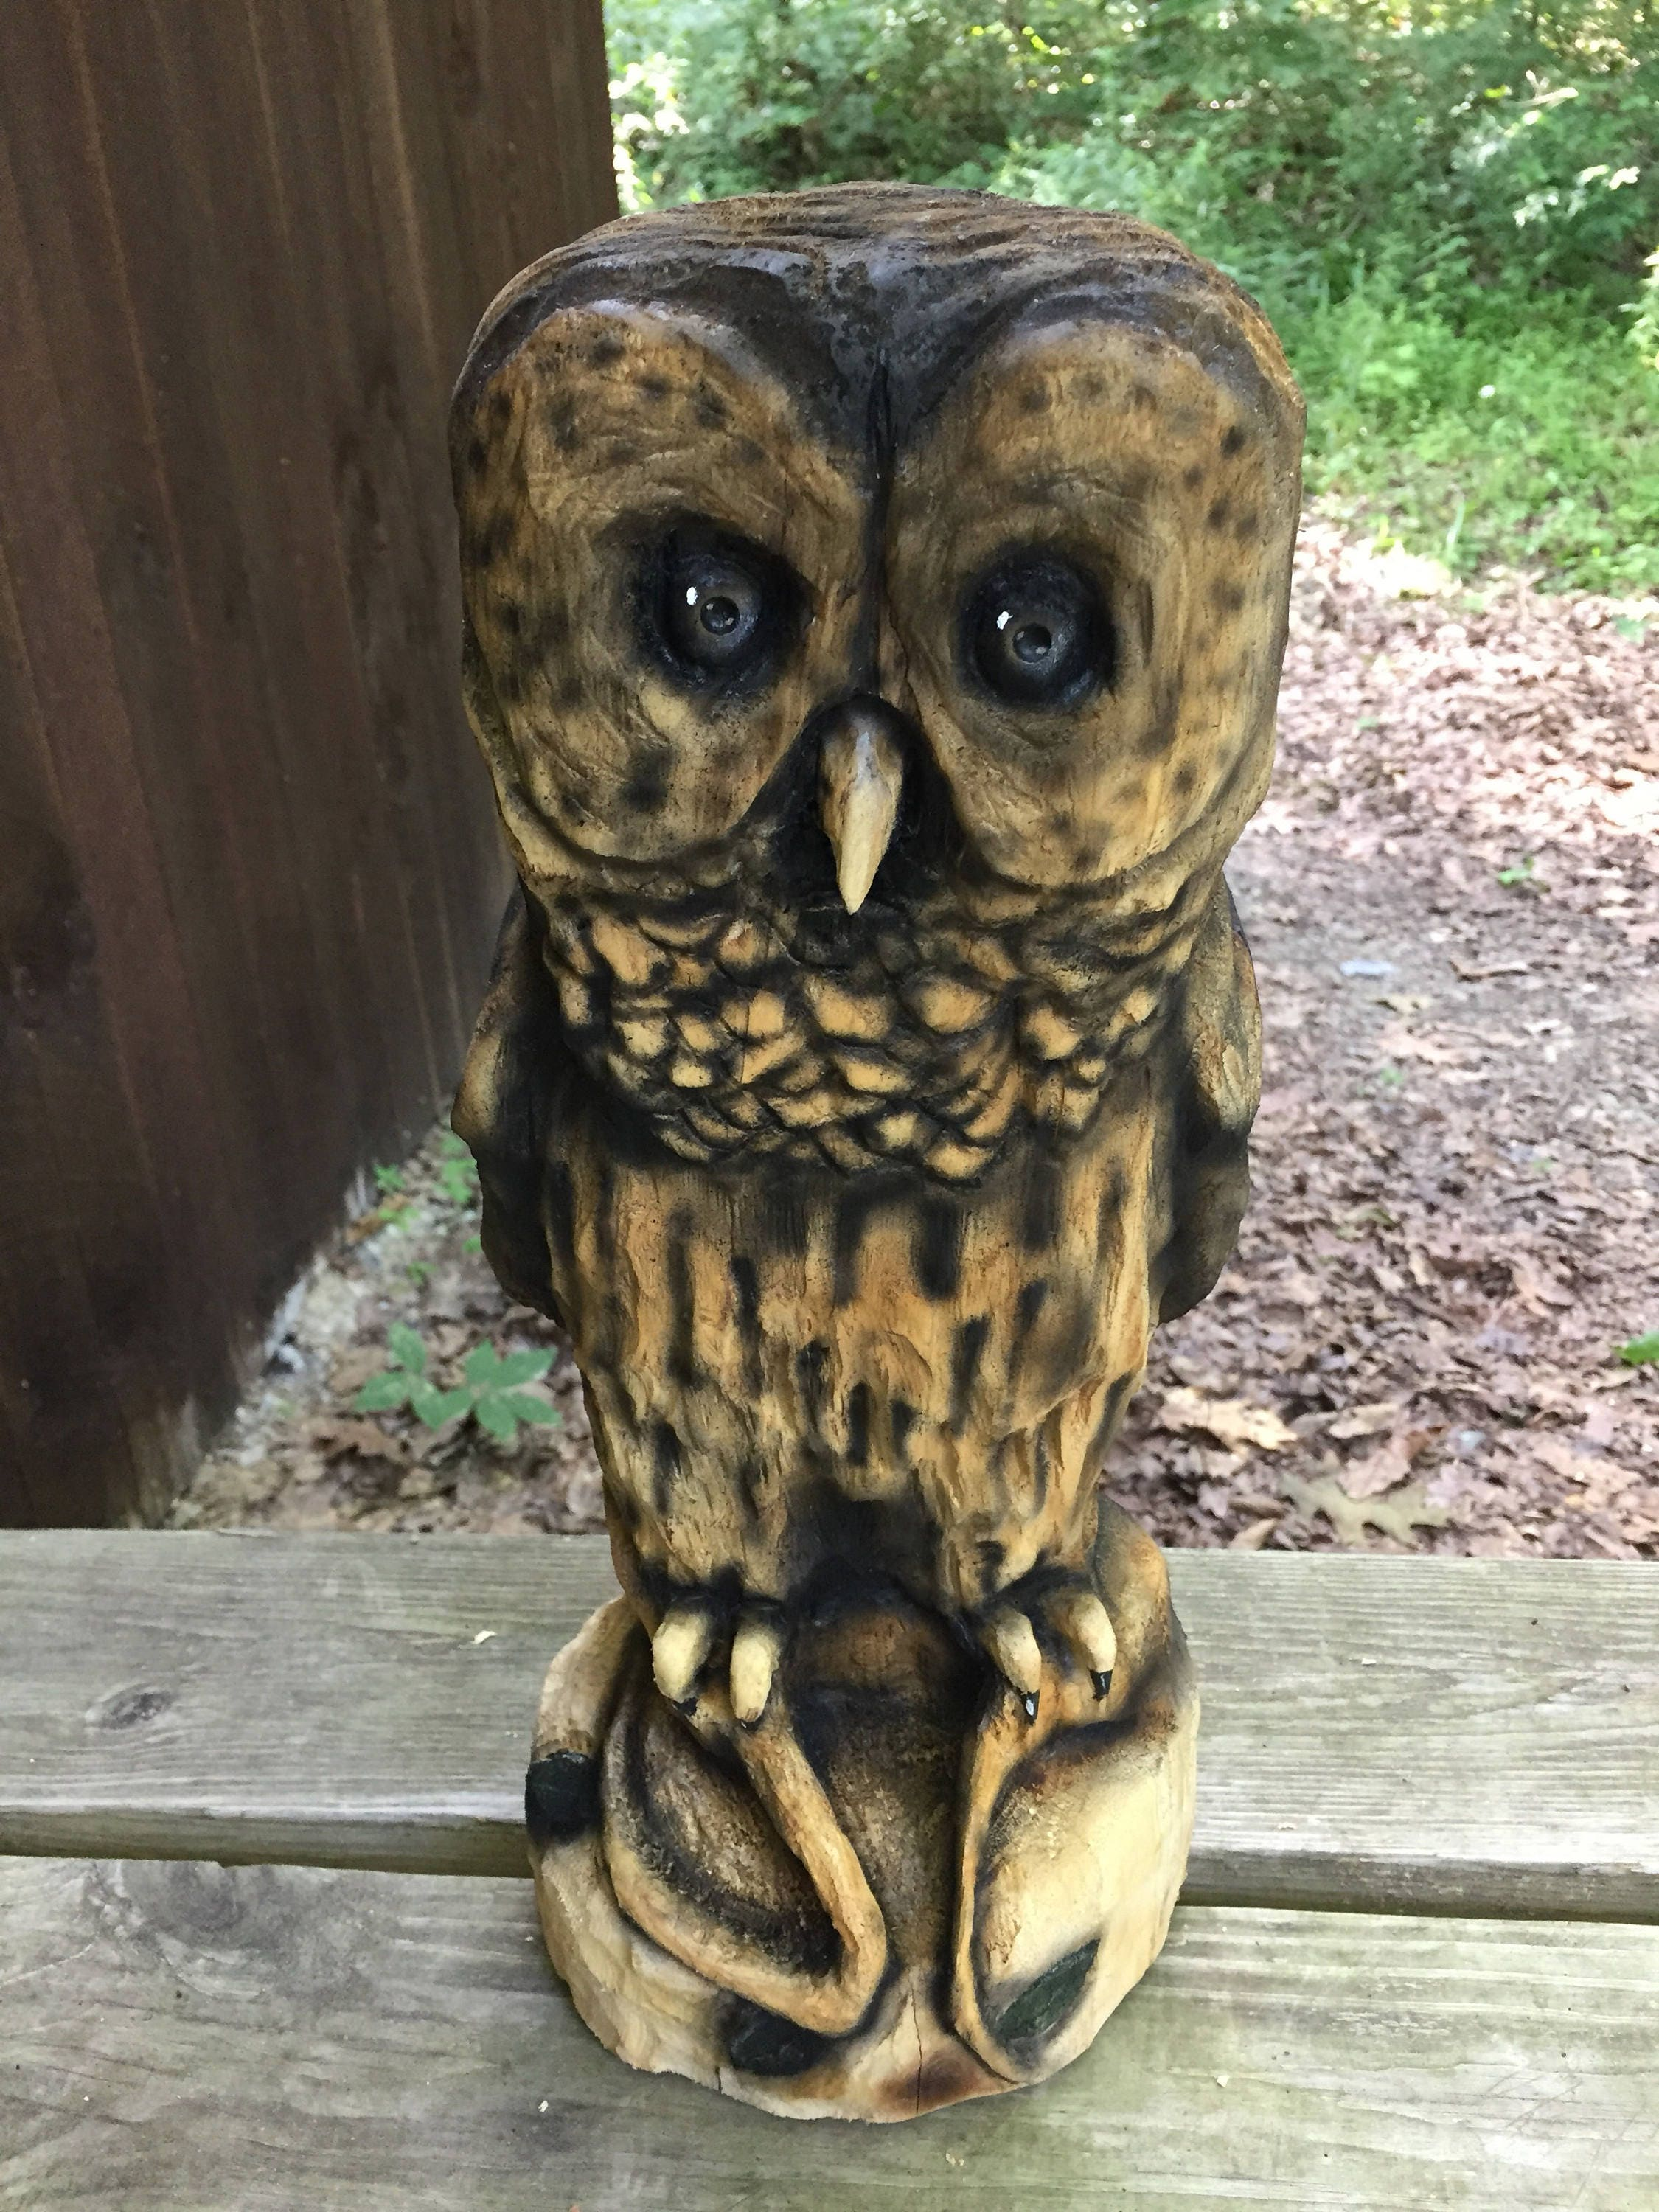 Owl chainsaw carving wood carving hand carved wood art by josh